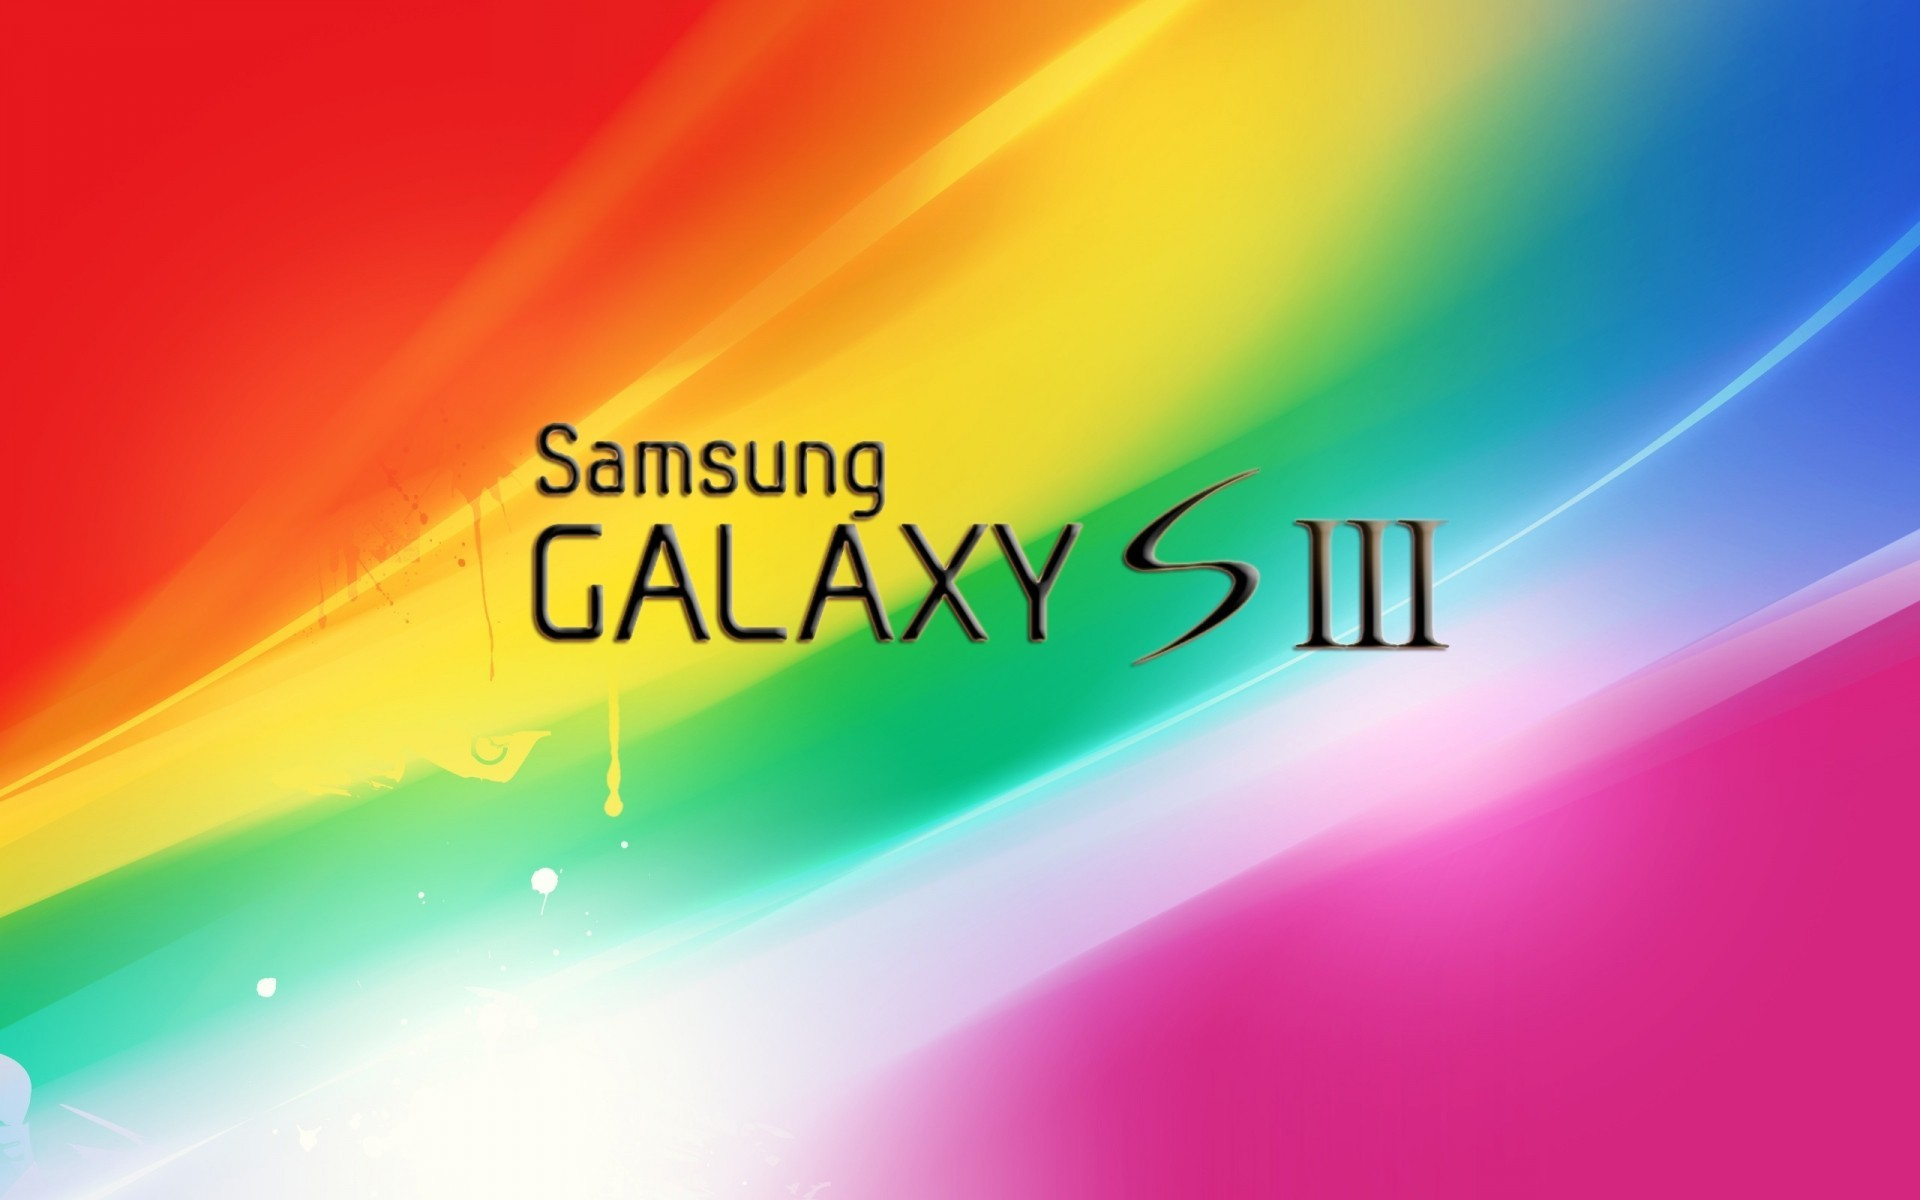 Samsung Galaxy S3 Wallpapers Hd: Samsung HD Wallpapers And Samsung Desktop Backgrounds Up